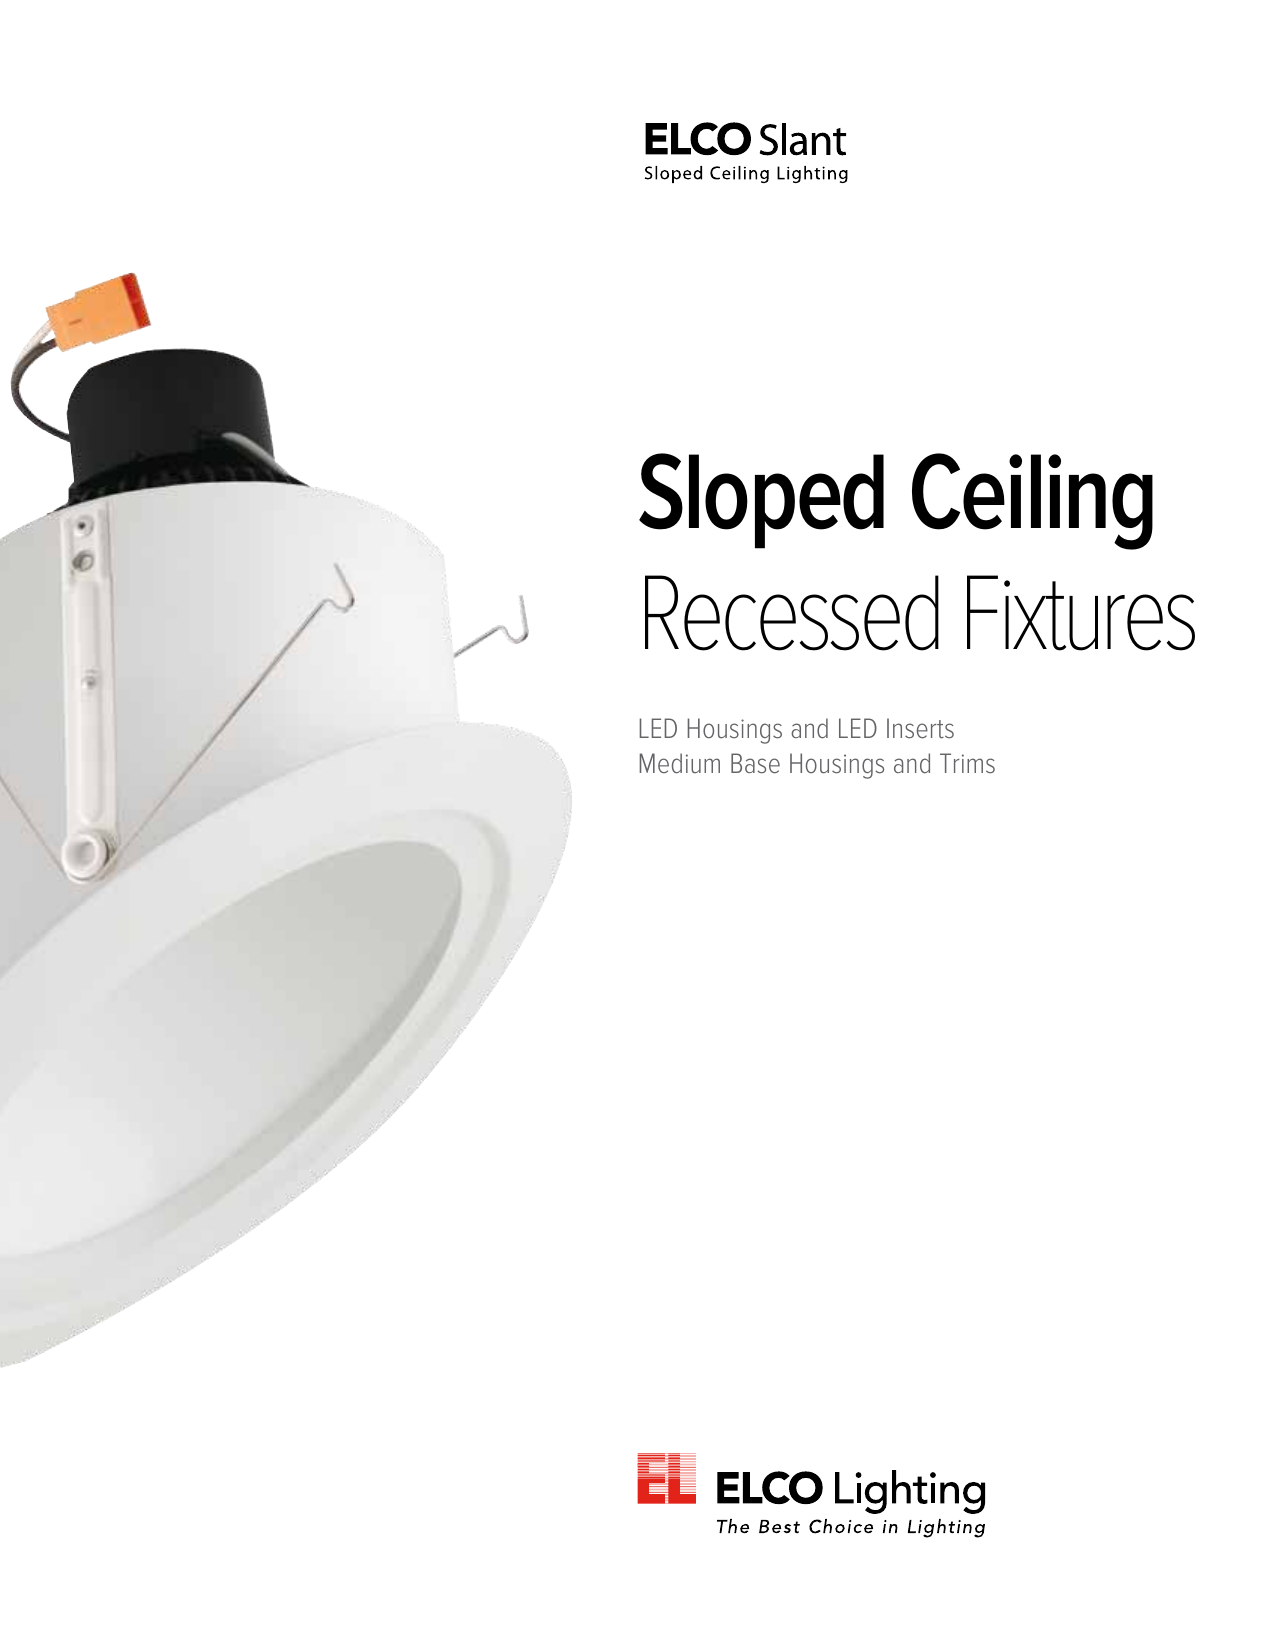 Sloped Ceiling Recessed Fixtures